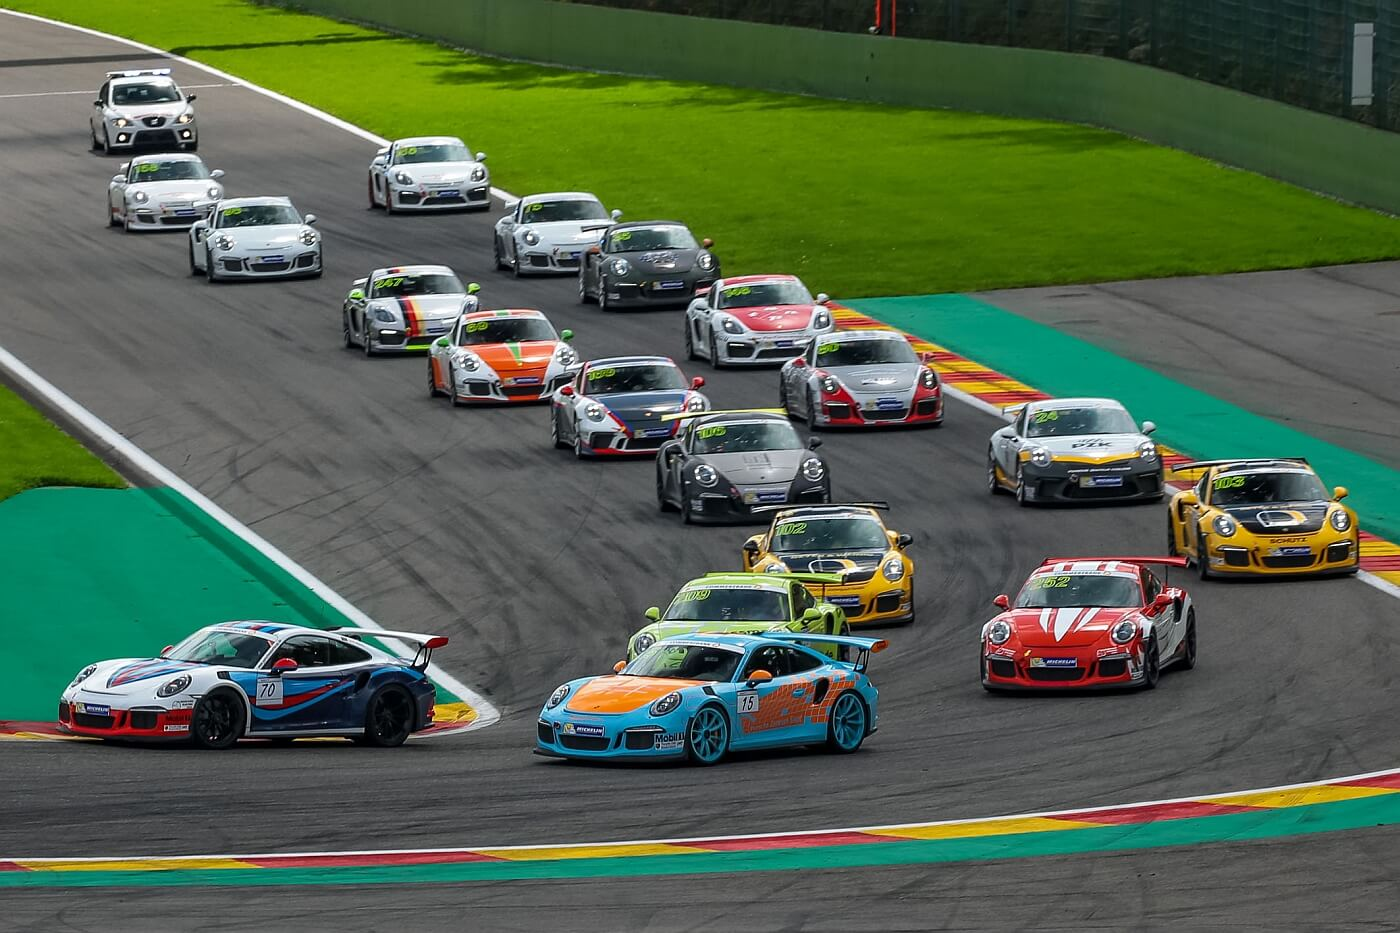 Porsche Sports Cup Saison 2017 Spa-Francorchamps